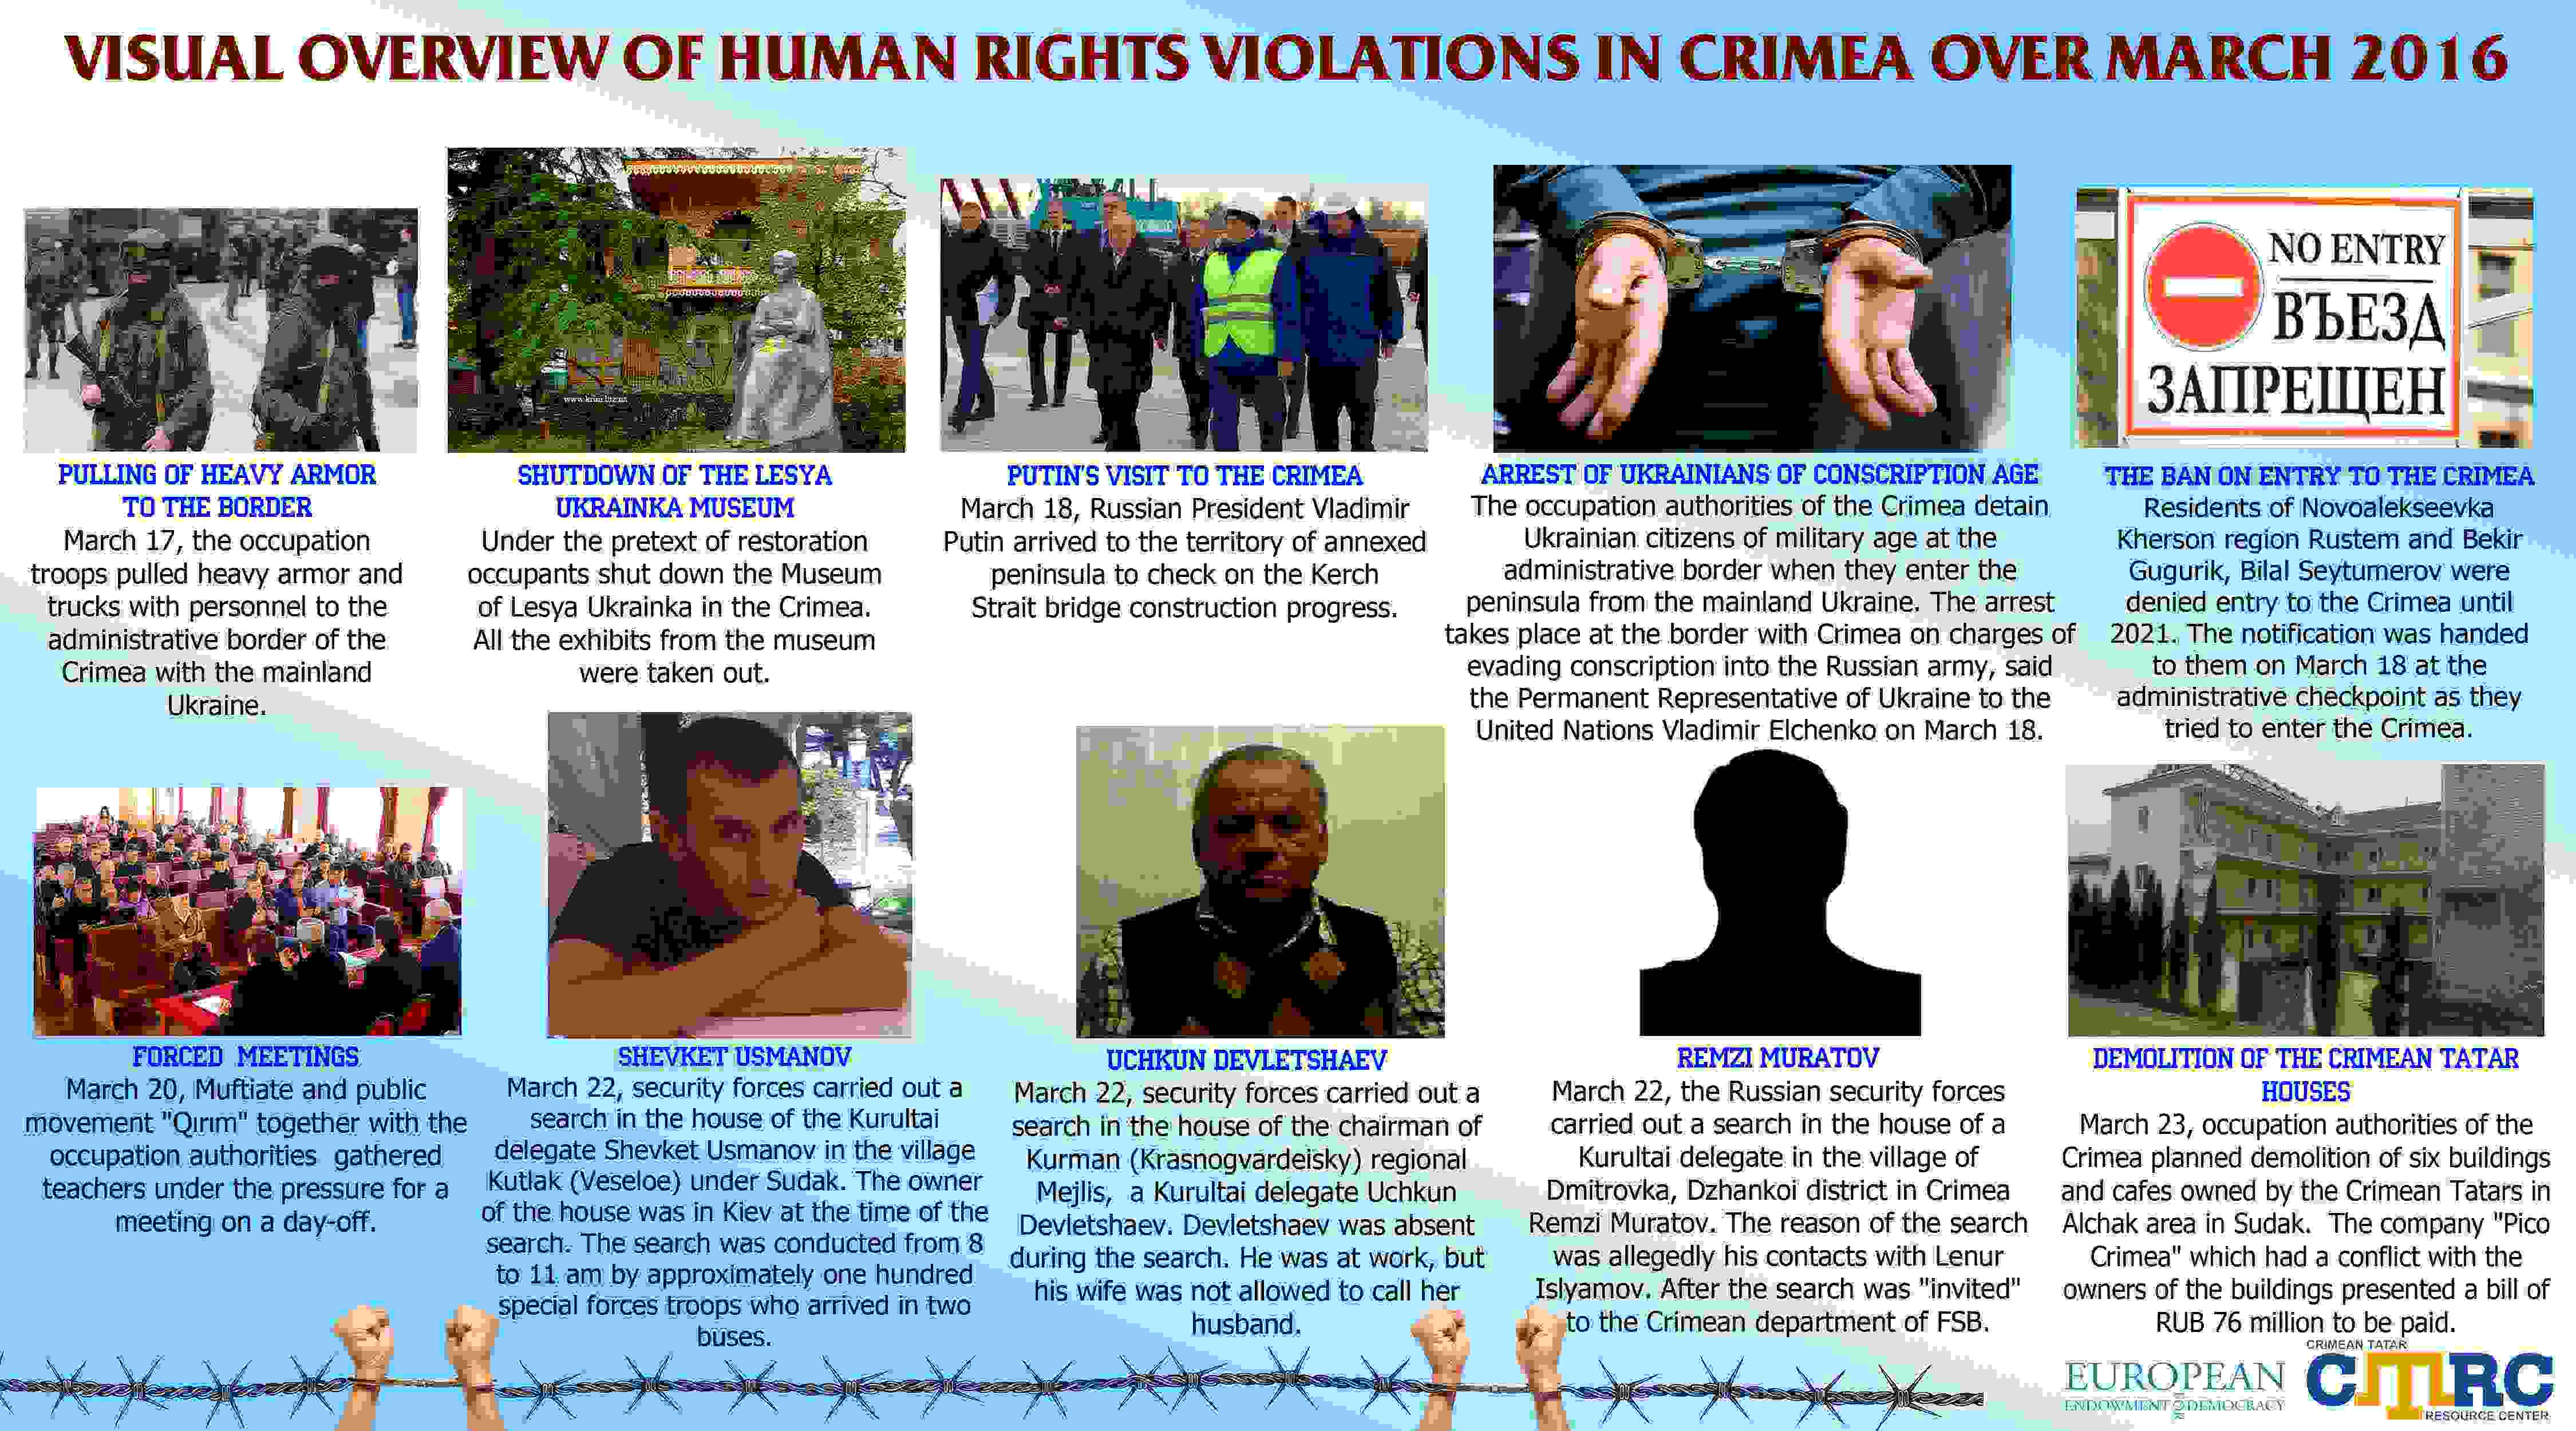 an overview of human rights Many human rights organizations like national human rights commission (nhrc), asian human rights commission, un human rights council, amnesty international, and terai human rights defenders alliance (thrd) have alleged that nepal police and armed police force may have used excessive force during the protests.